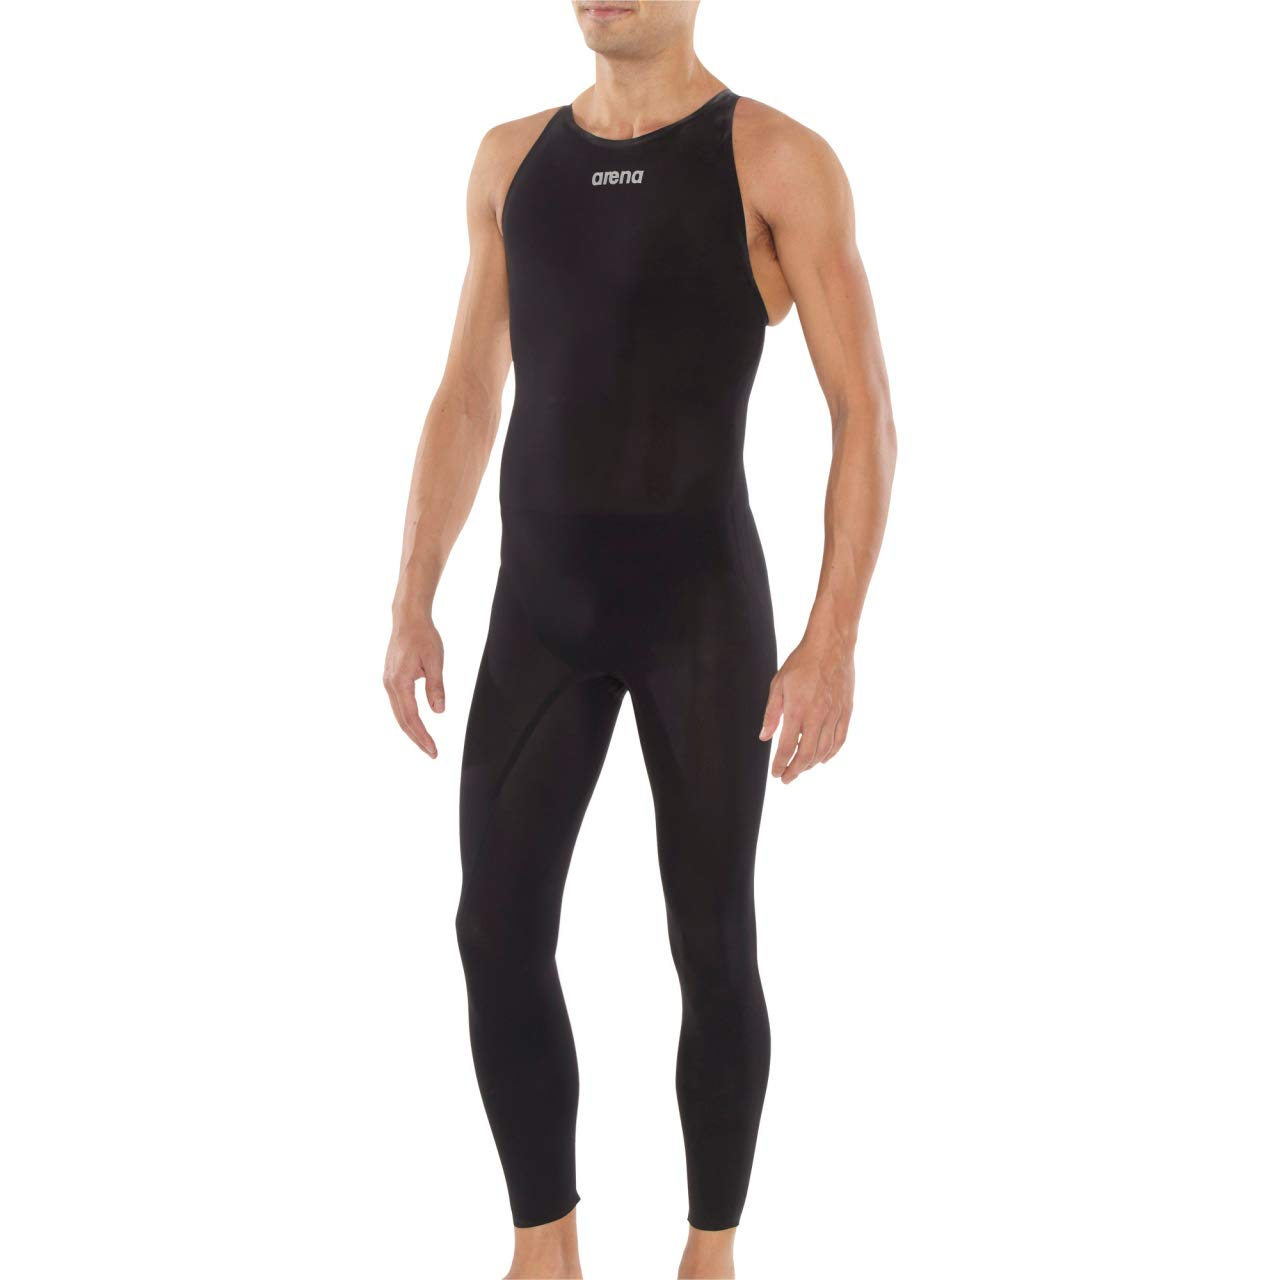 arena Powerskin R-Evo+ Open Water Closed Back Men's Racing Swimsuit, SL Black, 26 by Arena